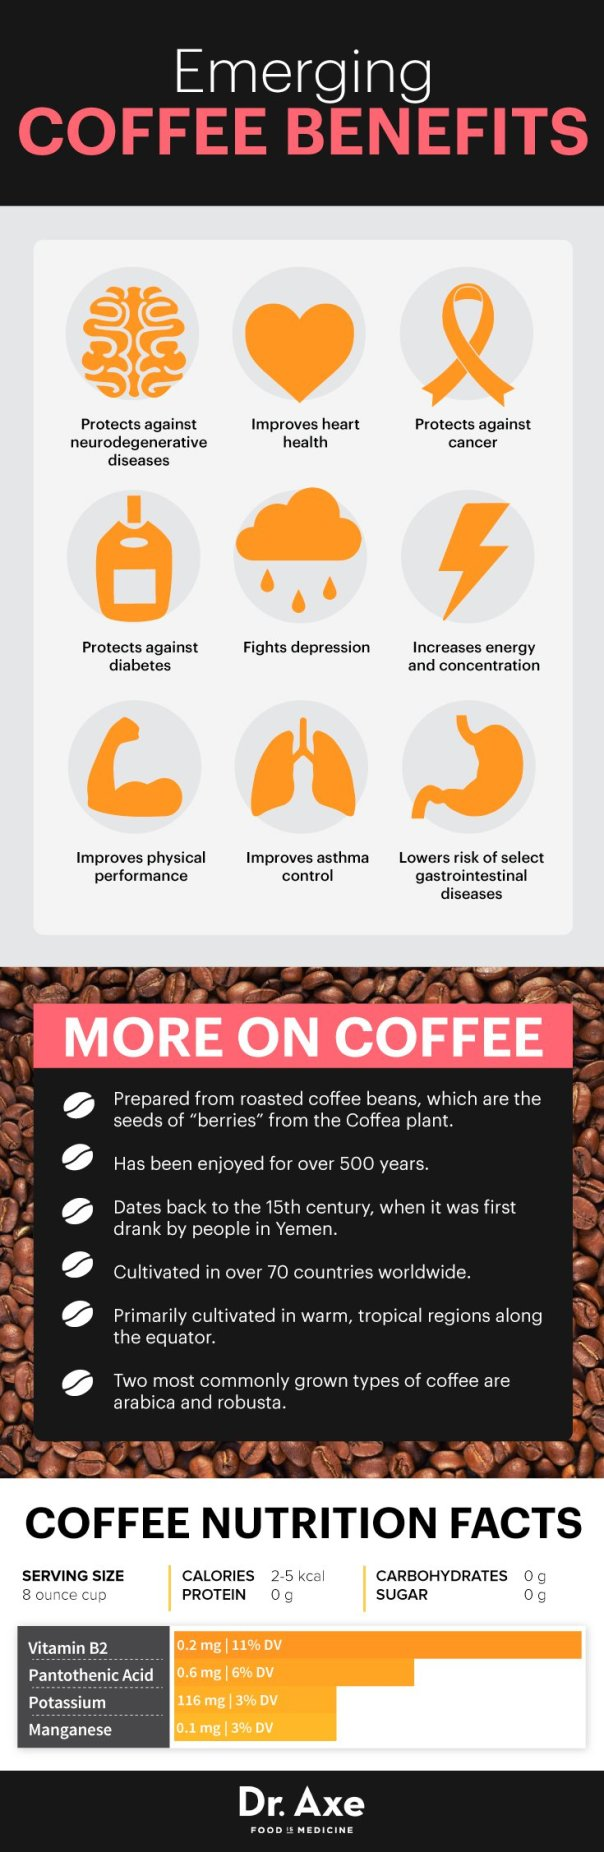 CoffeeBenefits